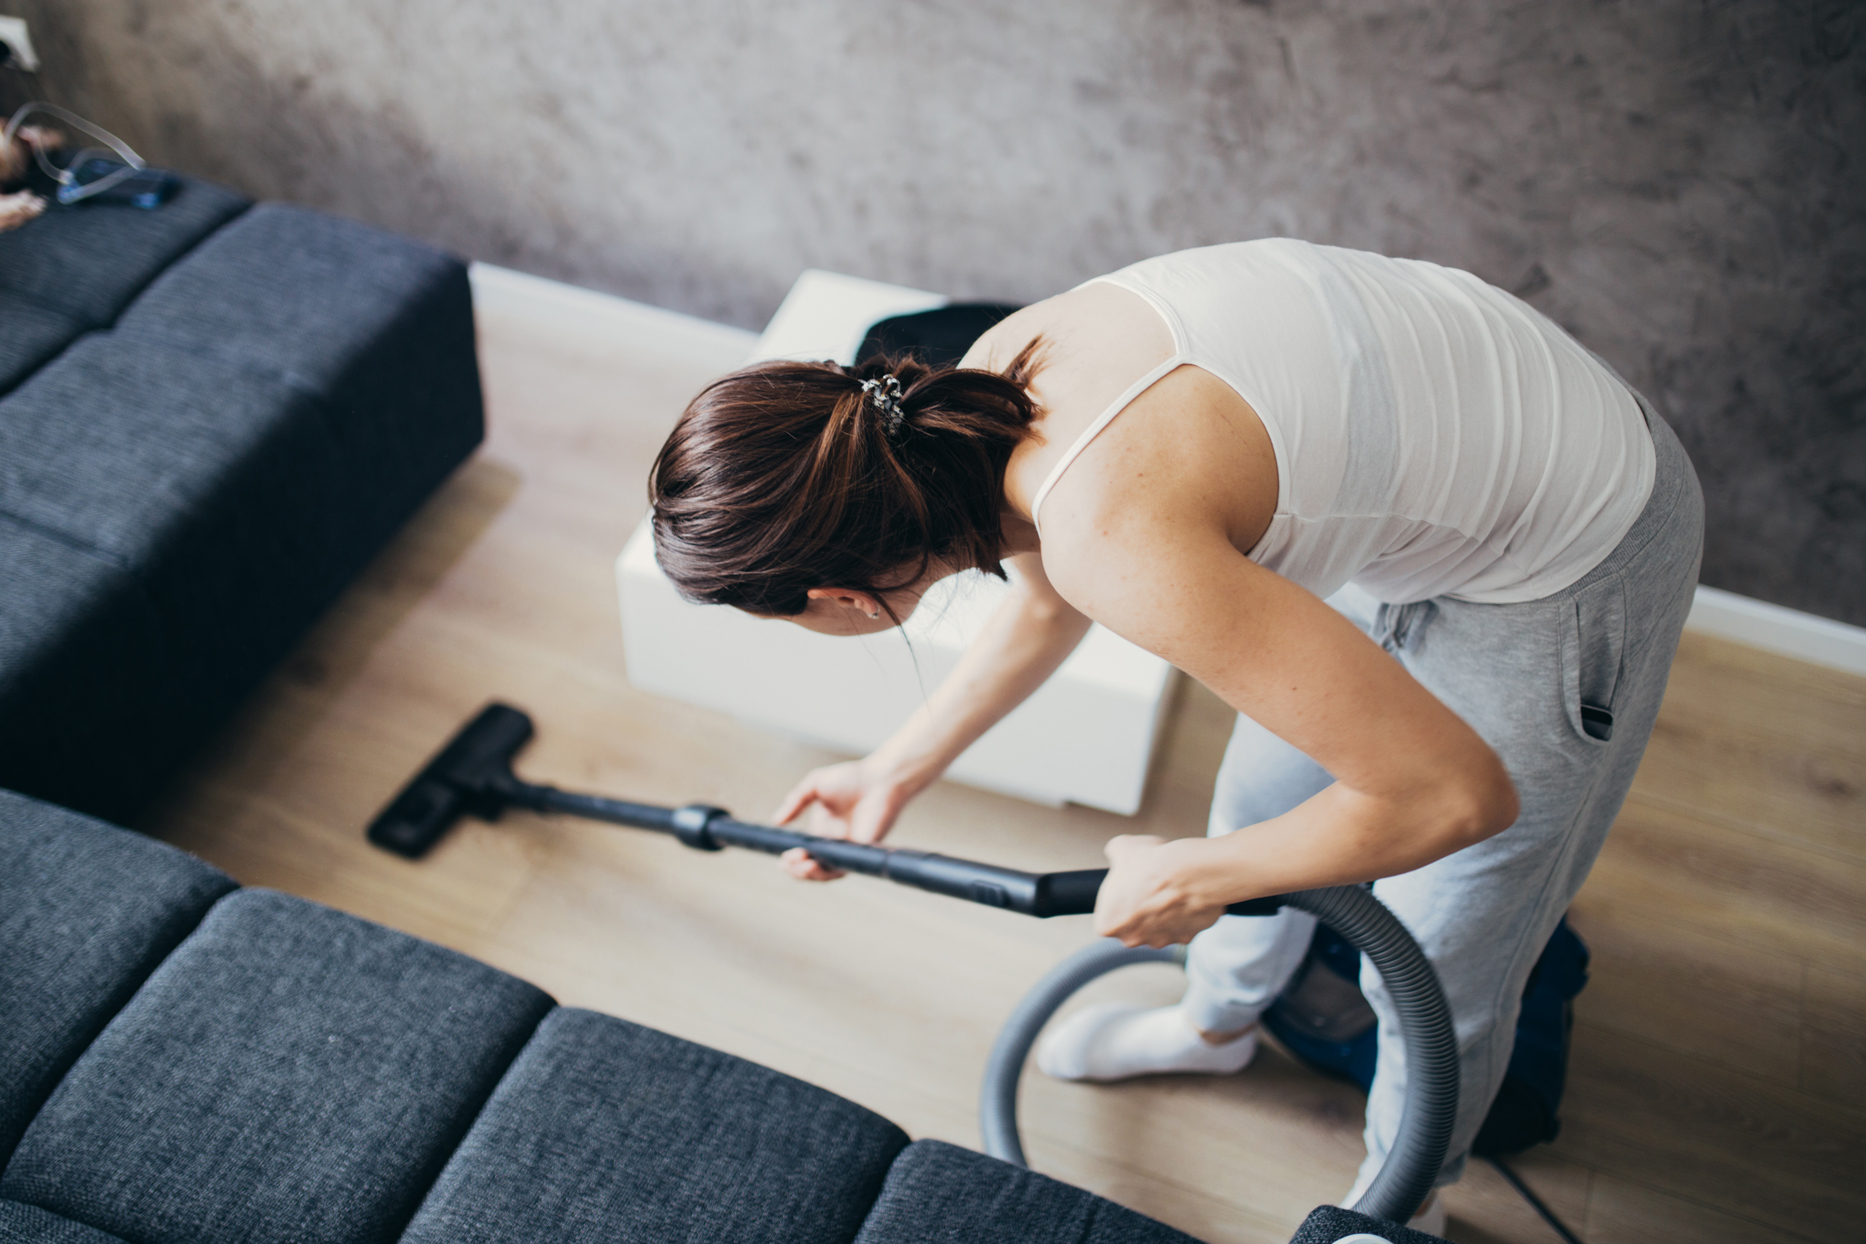 person vacuuming hard wood floor next to couch